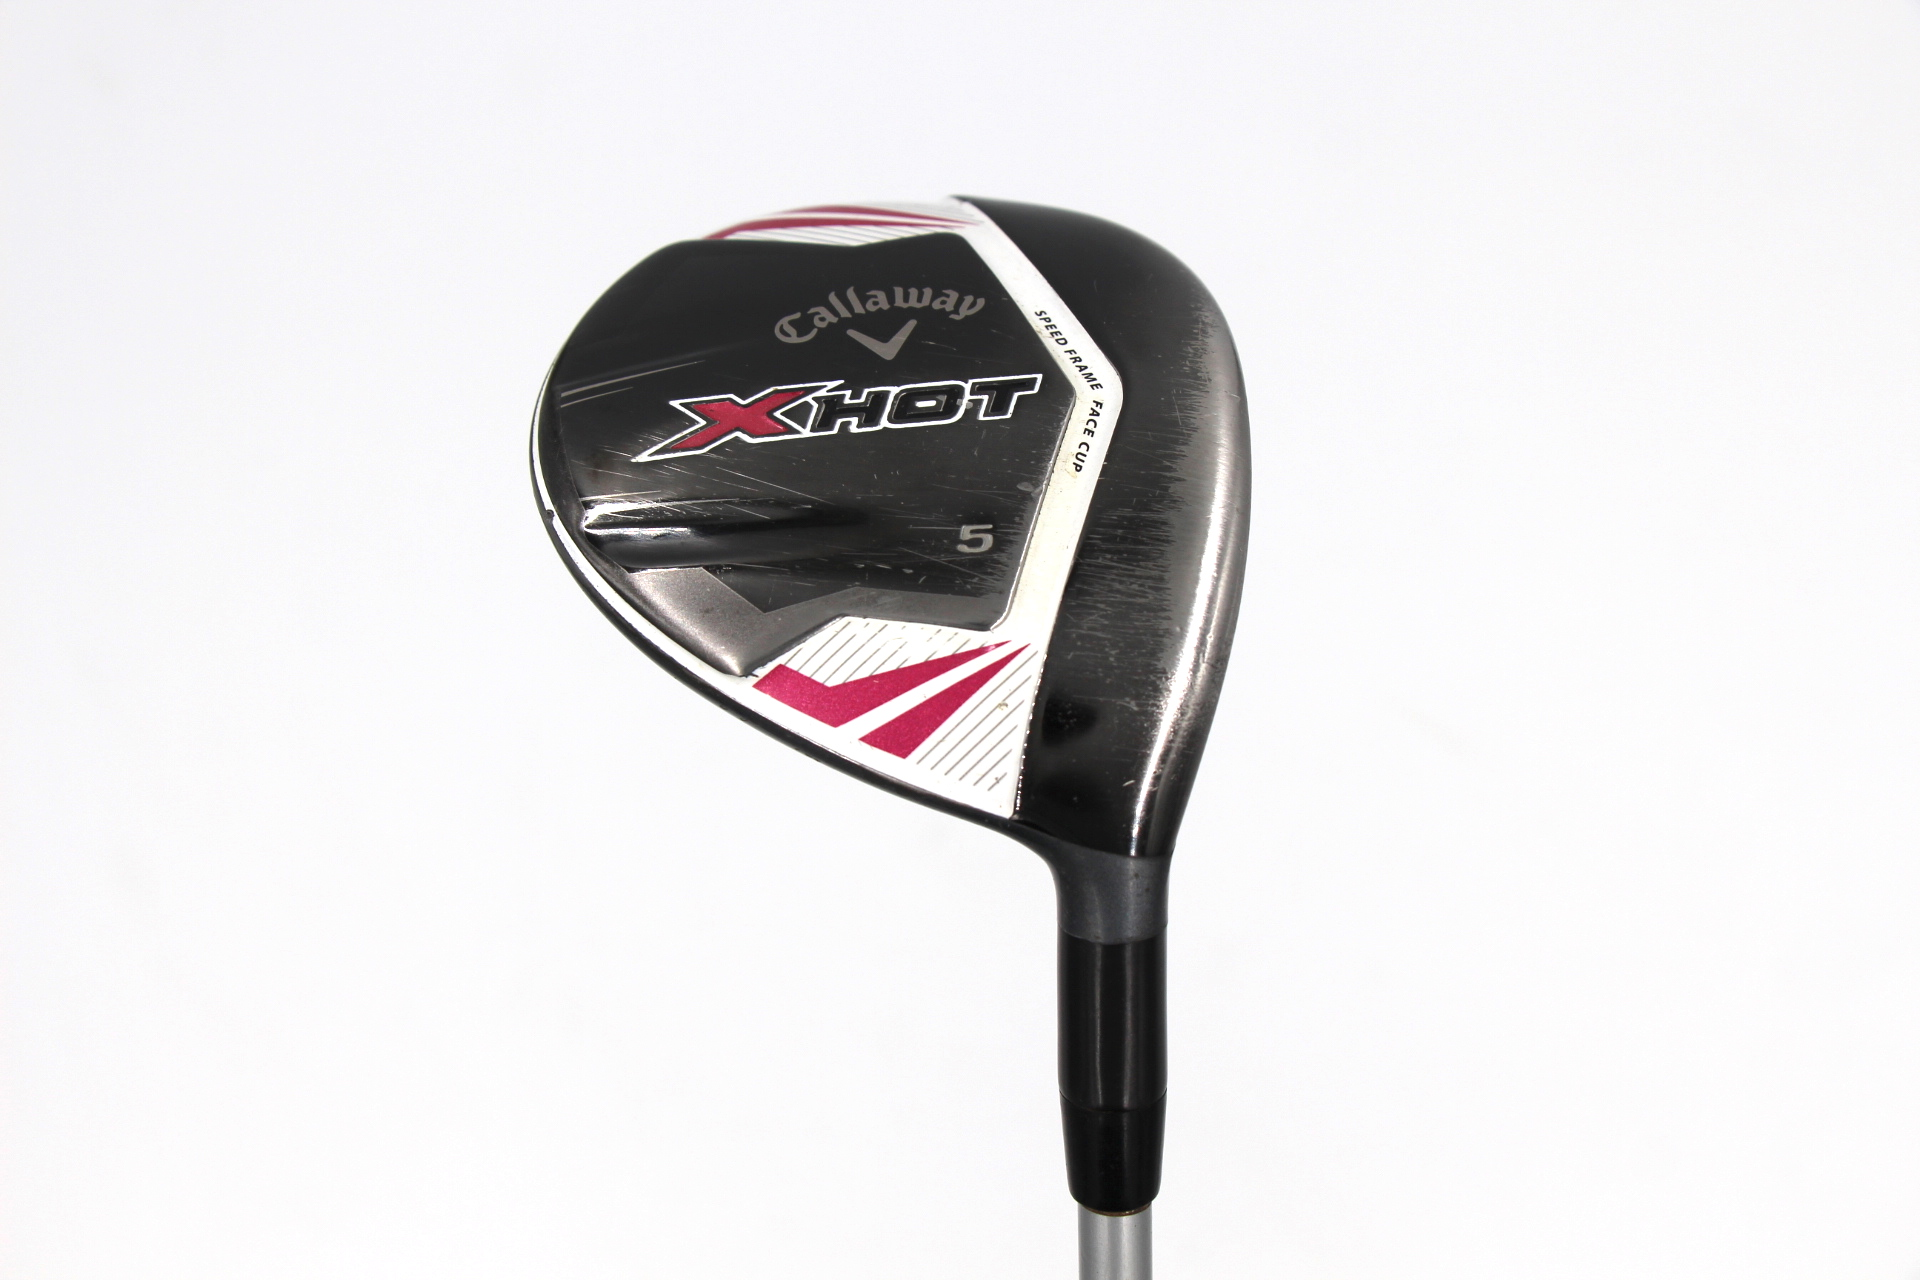 Callaway X Hot 5-Wood – Ladies